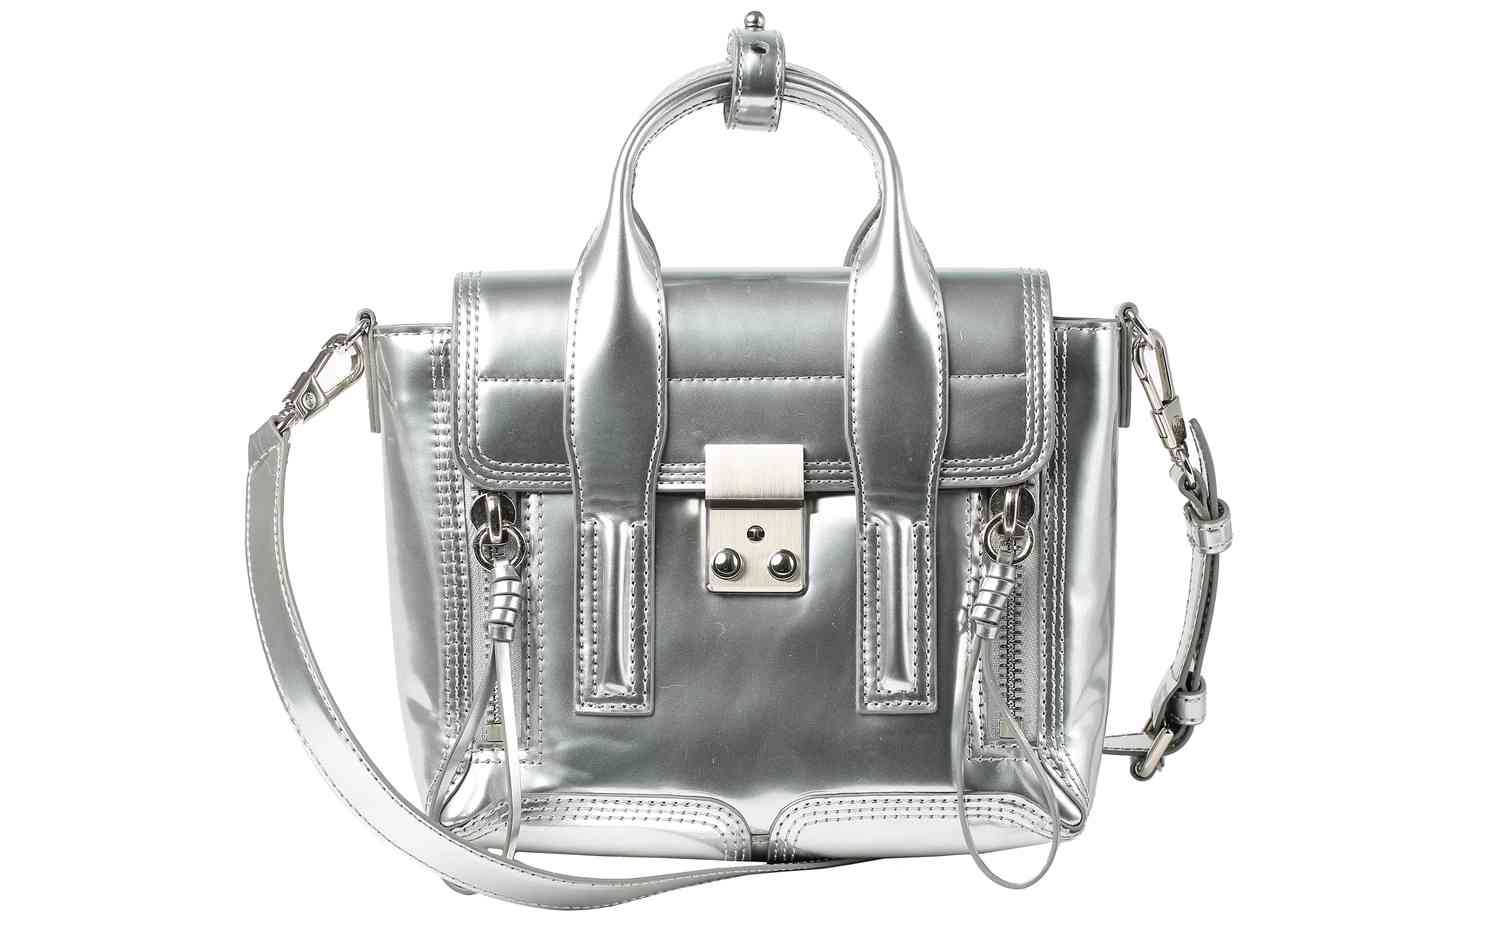 3.1 Phillip Lim: Pashli Mini Satchel